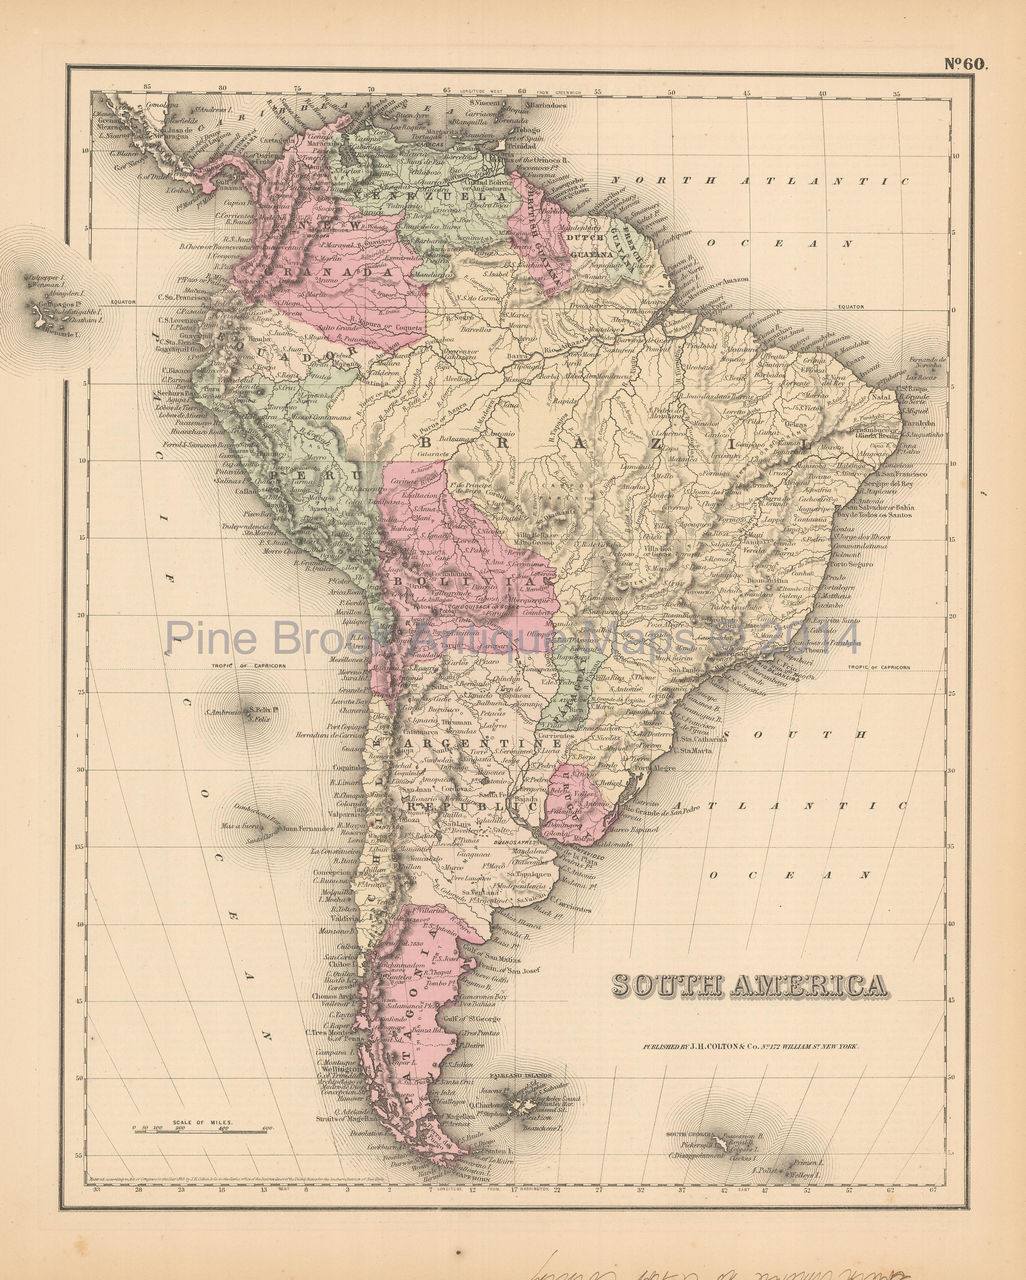 South America Antique Map Colton 1858 on old maps of the netherlands, old map of pacific northwest, old map of british isles, old map of venezuela, old map of ancient rome, old timey of central america, old map of namibia, old map of india, old maps of north america, old map of hong kong, old map of bhutan, old map of arabian peninsula, old map north africa, old south plantation map, old map of belarus, old map of iraq, old map of bulgaria, old map of greenland, old map of iberian peninsula, old usa map,